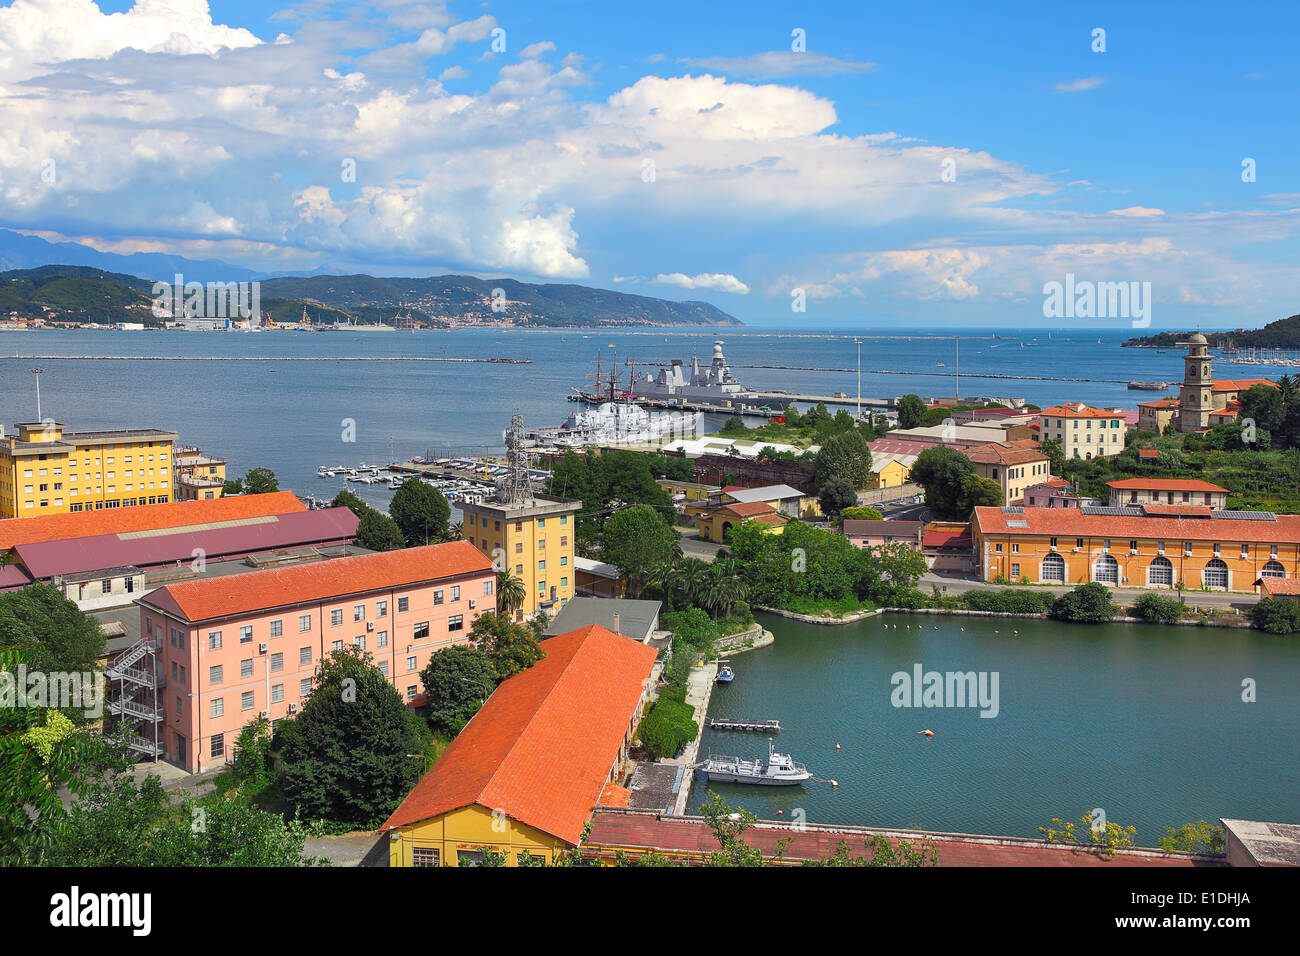 View of navy base on gulf of La Spezia under beautiful blue sky with white clouds on Mediterranean sea in Italy. - Stock Image